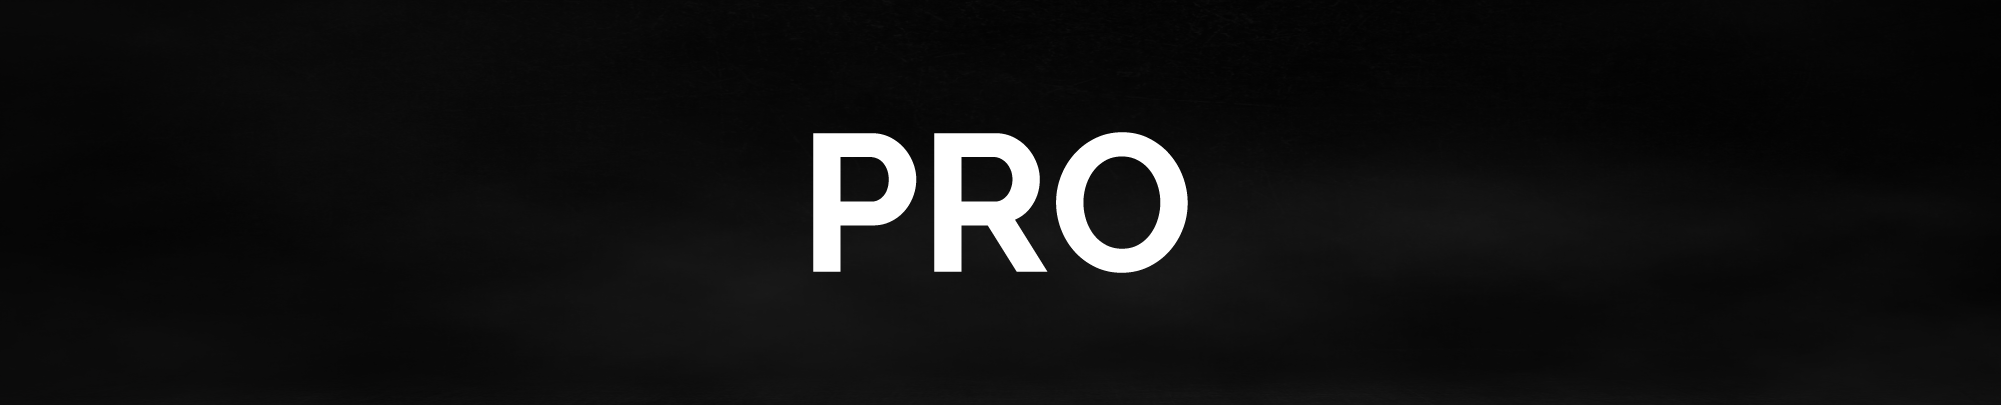 Putter Collection Banner Pro